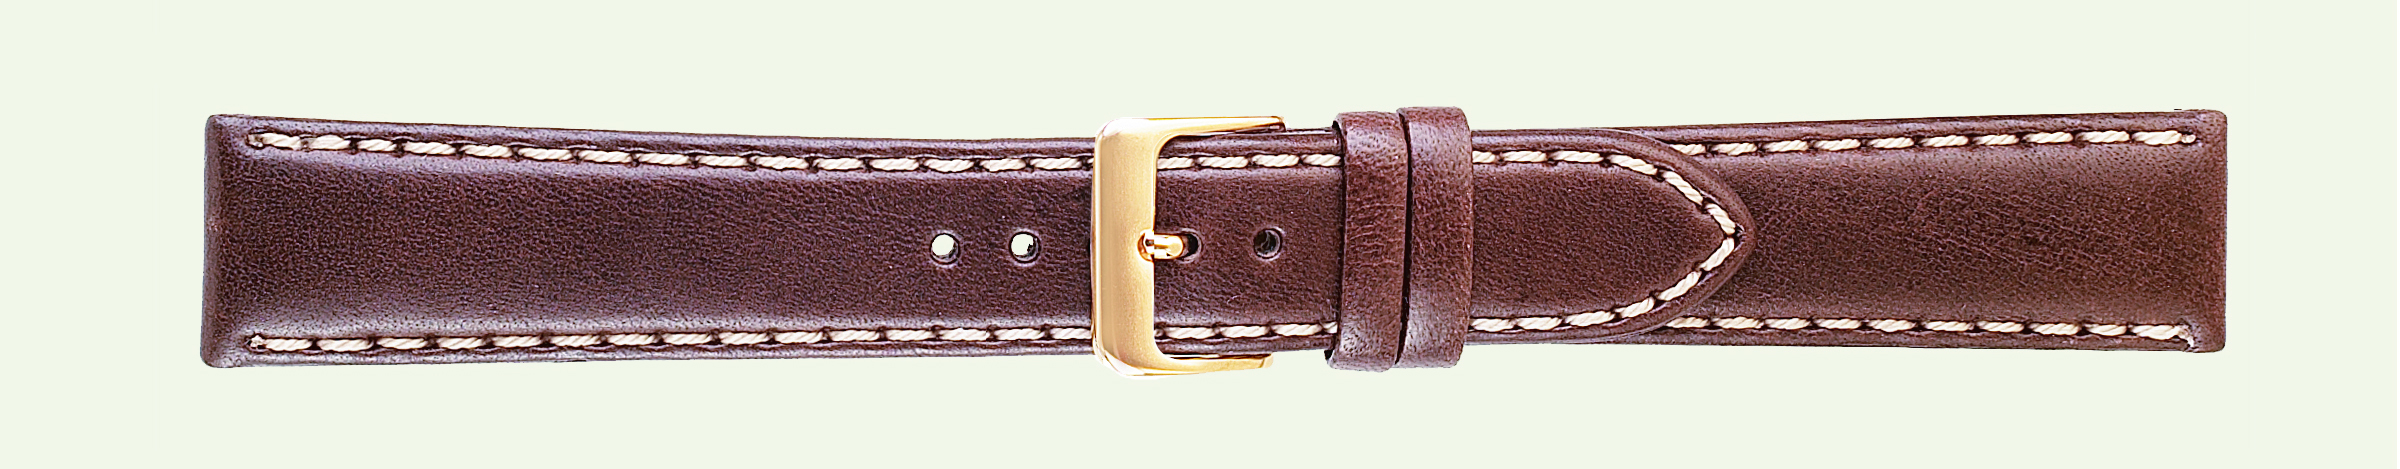 20MM Saddle Stitched Brown Leather Band-0